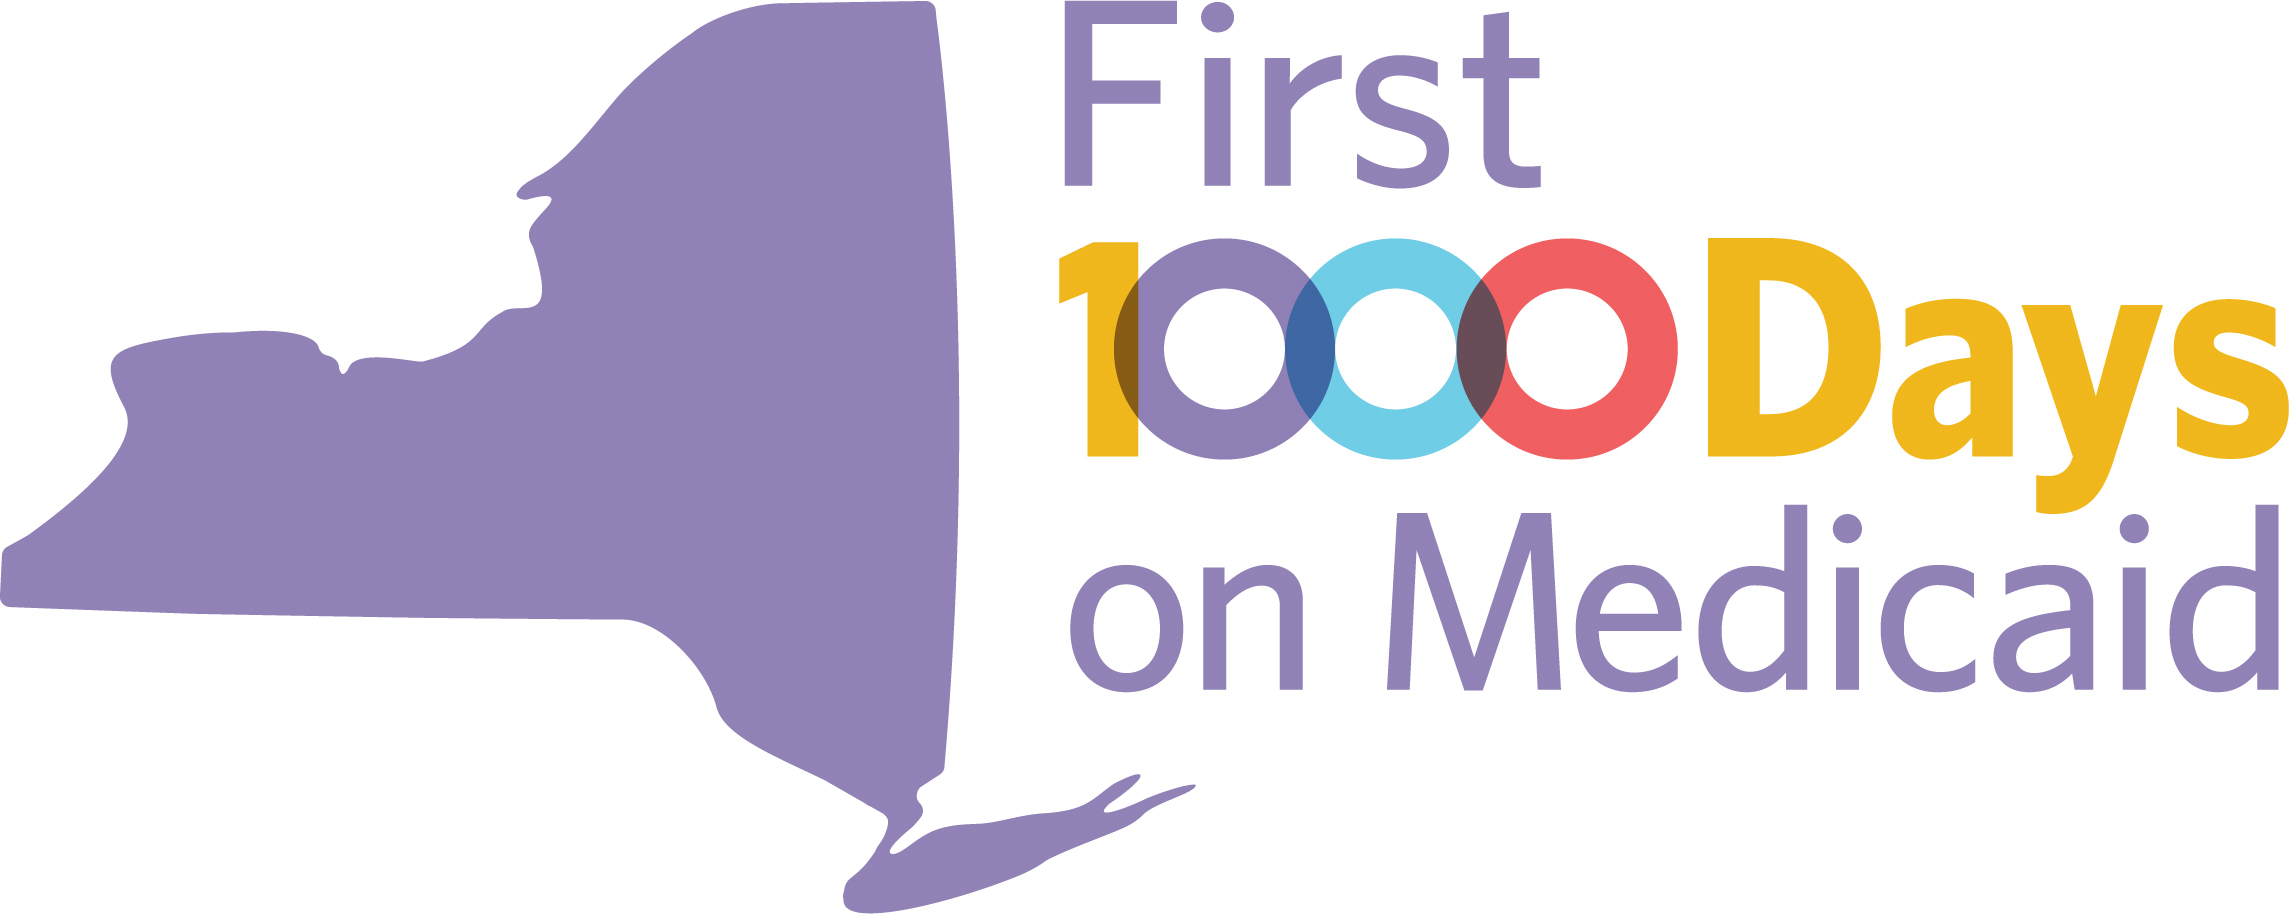 First 1000 Days on Medicaid Proposal Descriptions